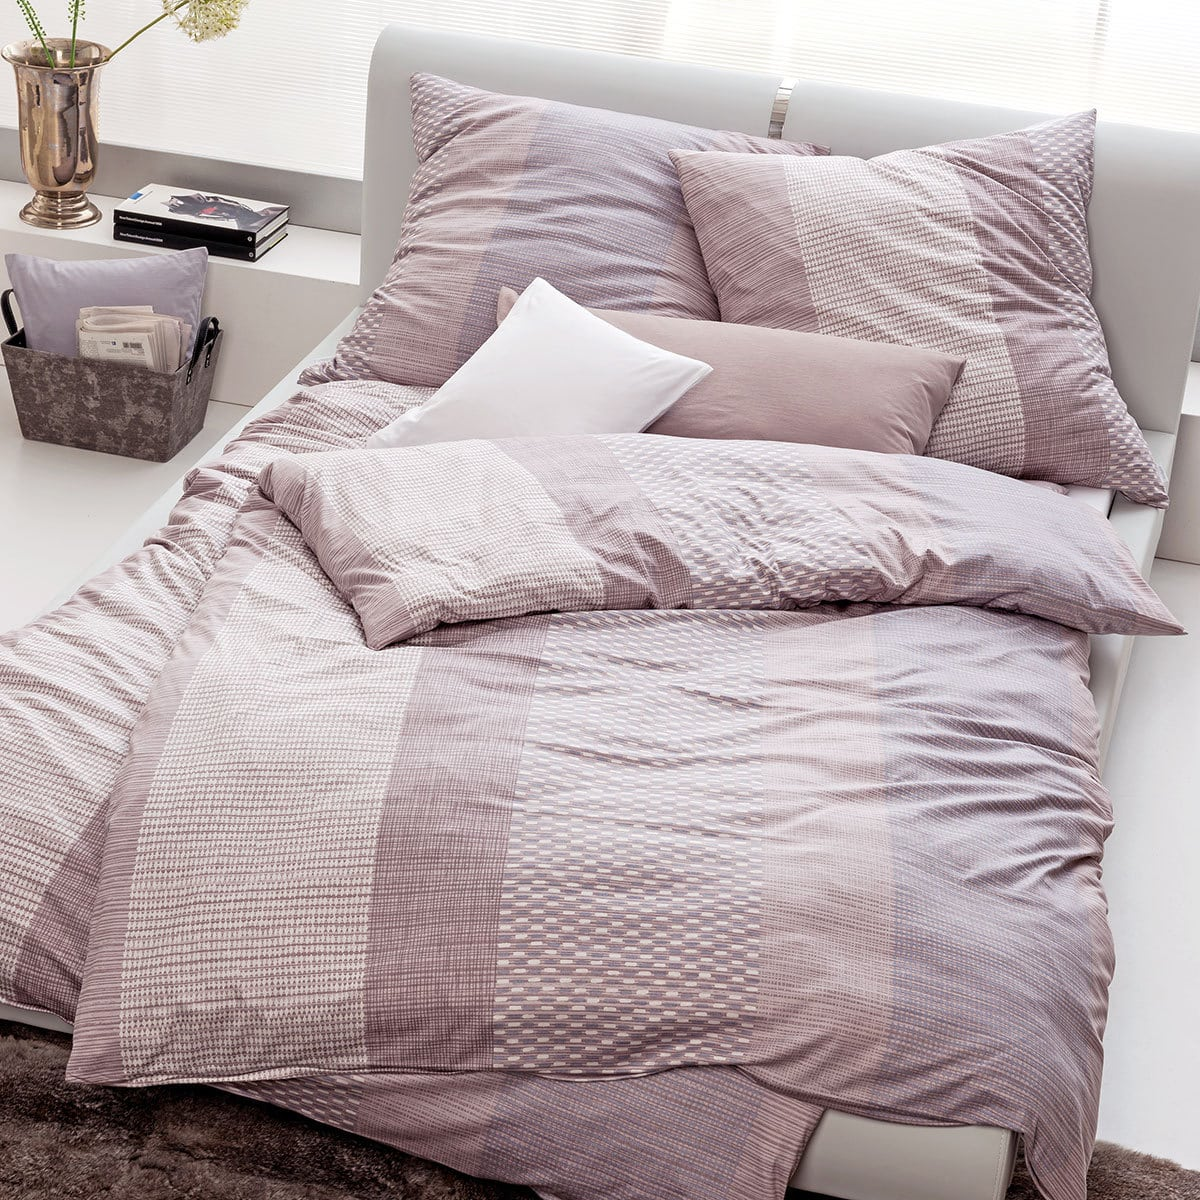 estella mako interlock jersey bettw sche jona mauve g nstig online kaufen bei bettwaren shop. Black Bedroom Furniture Sets. Home Design Ideas